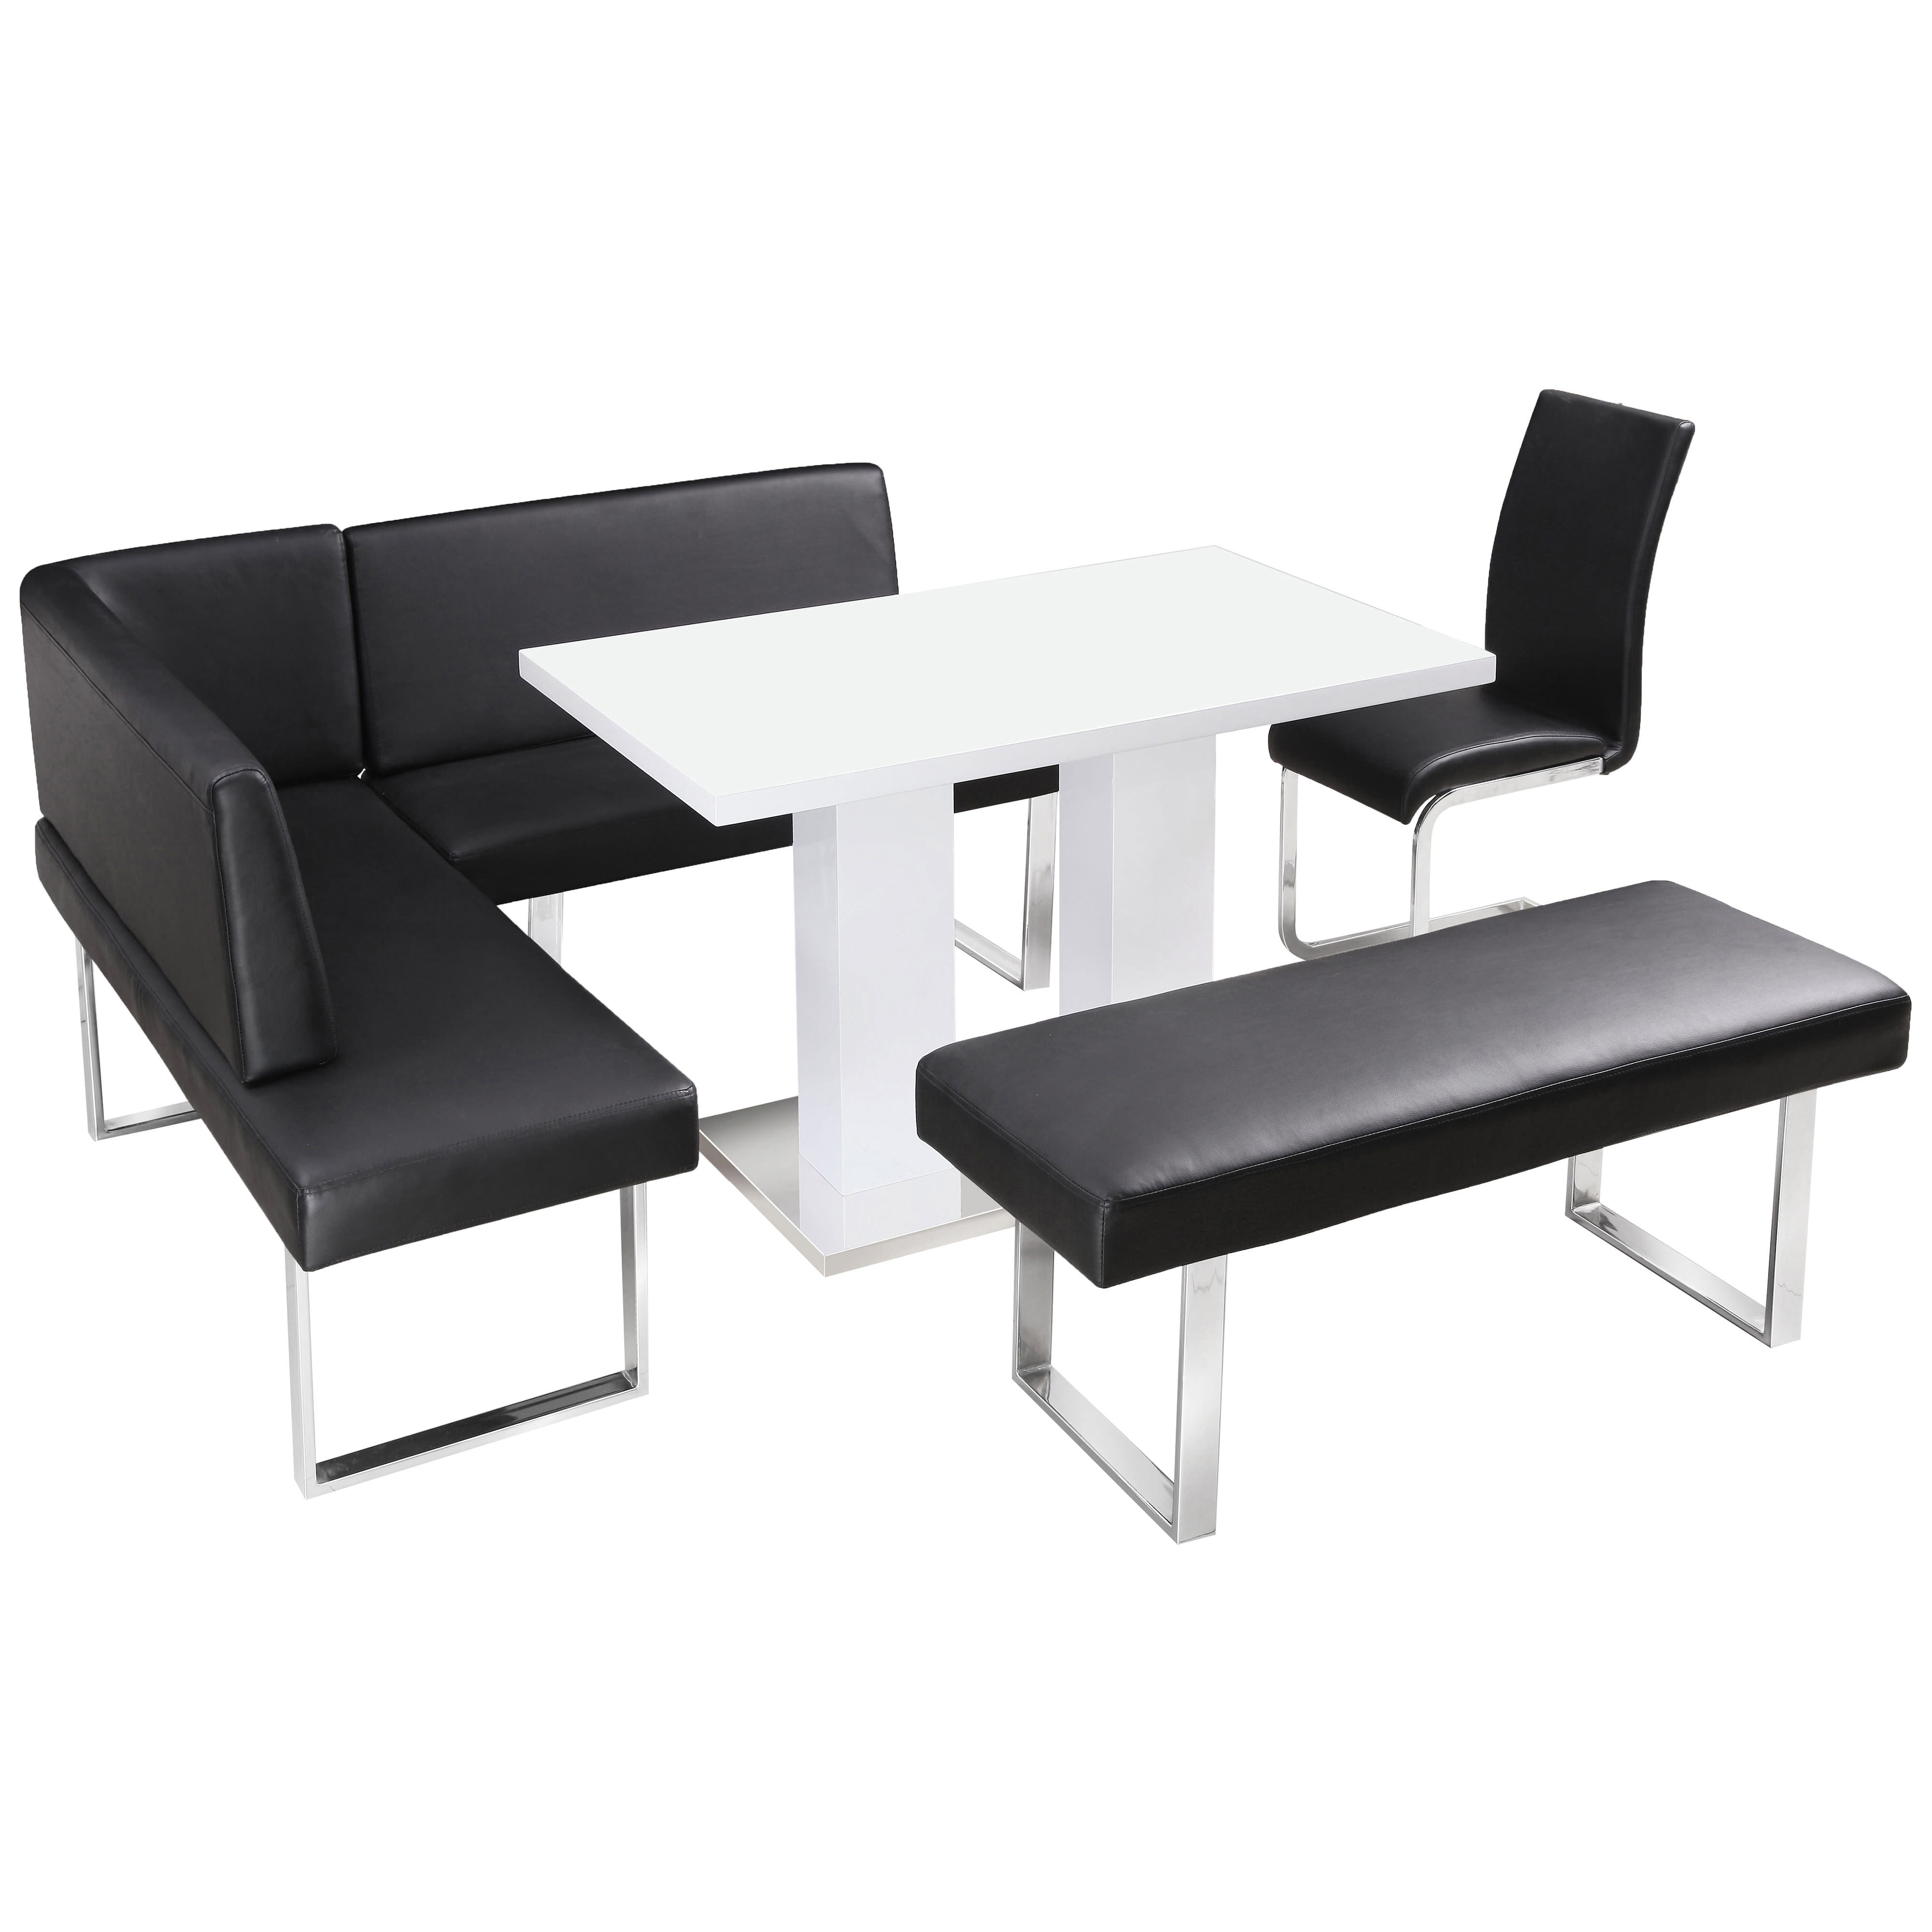 Popular High Gloss Dining Table And Chair Set With Corner Bench & 1 Seat intended for Black High Gloss Dining Chairs